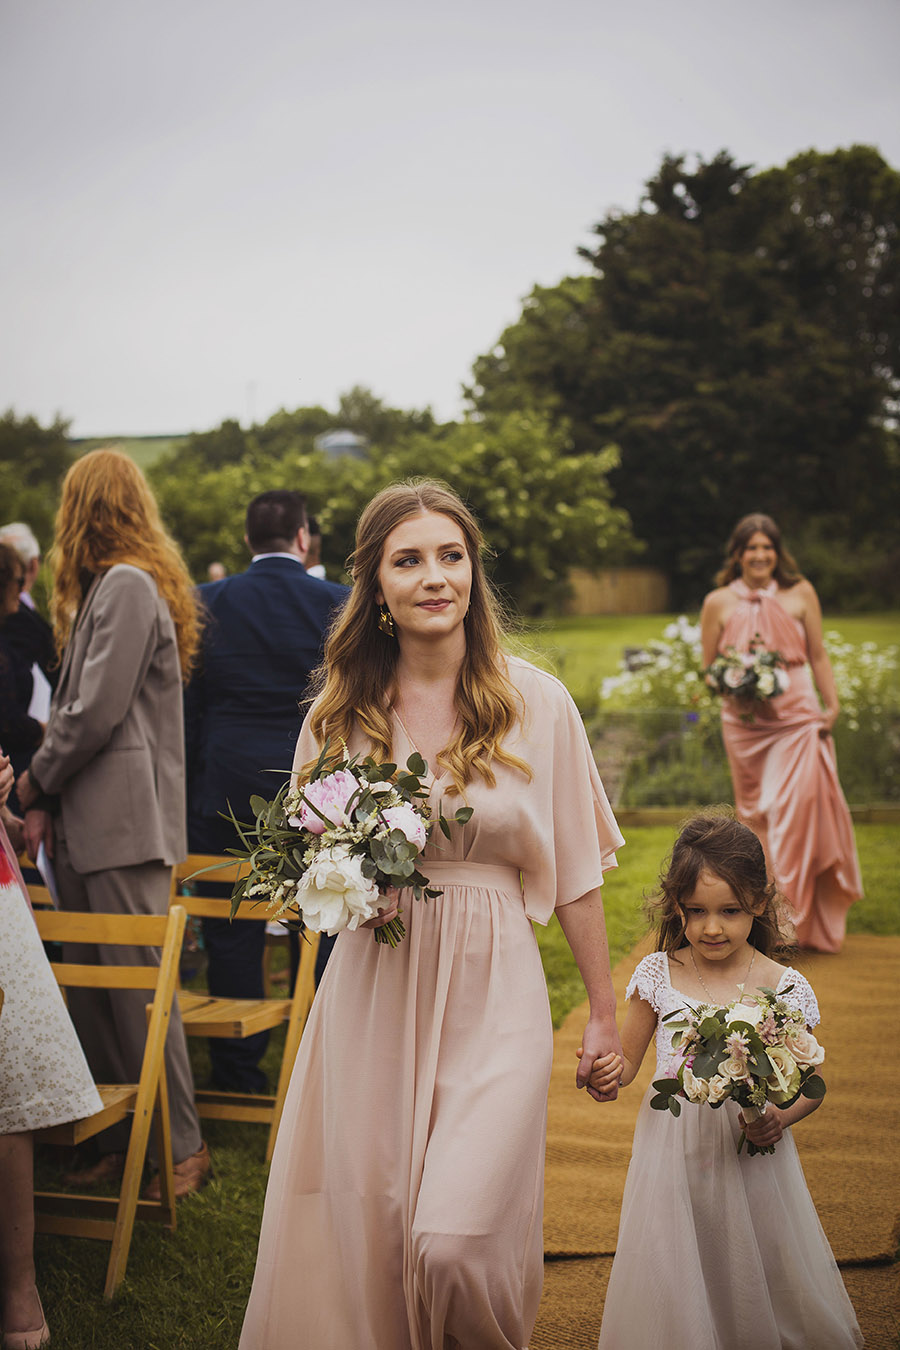 Relaxed outdoor wedding at Cott Farm Barn with images by Heather Birnie Photography on the English Wedding Blog (12)